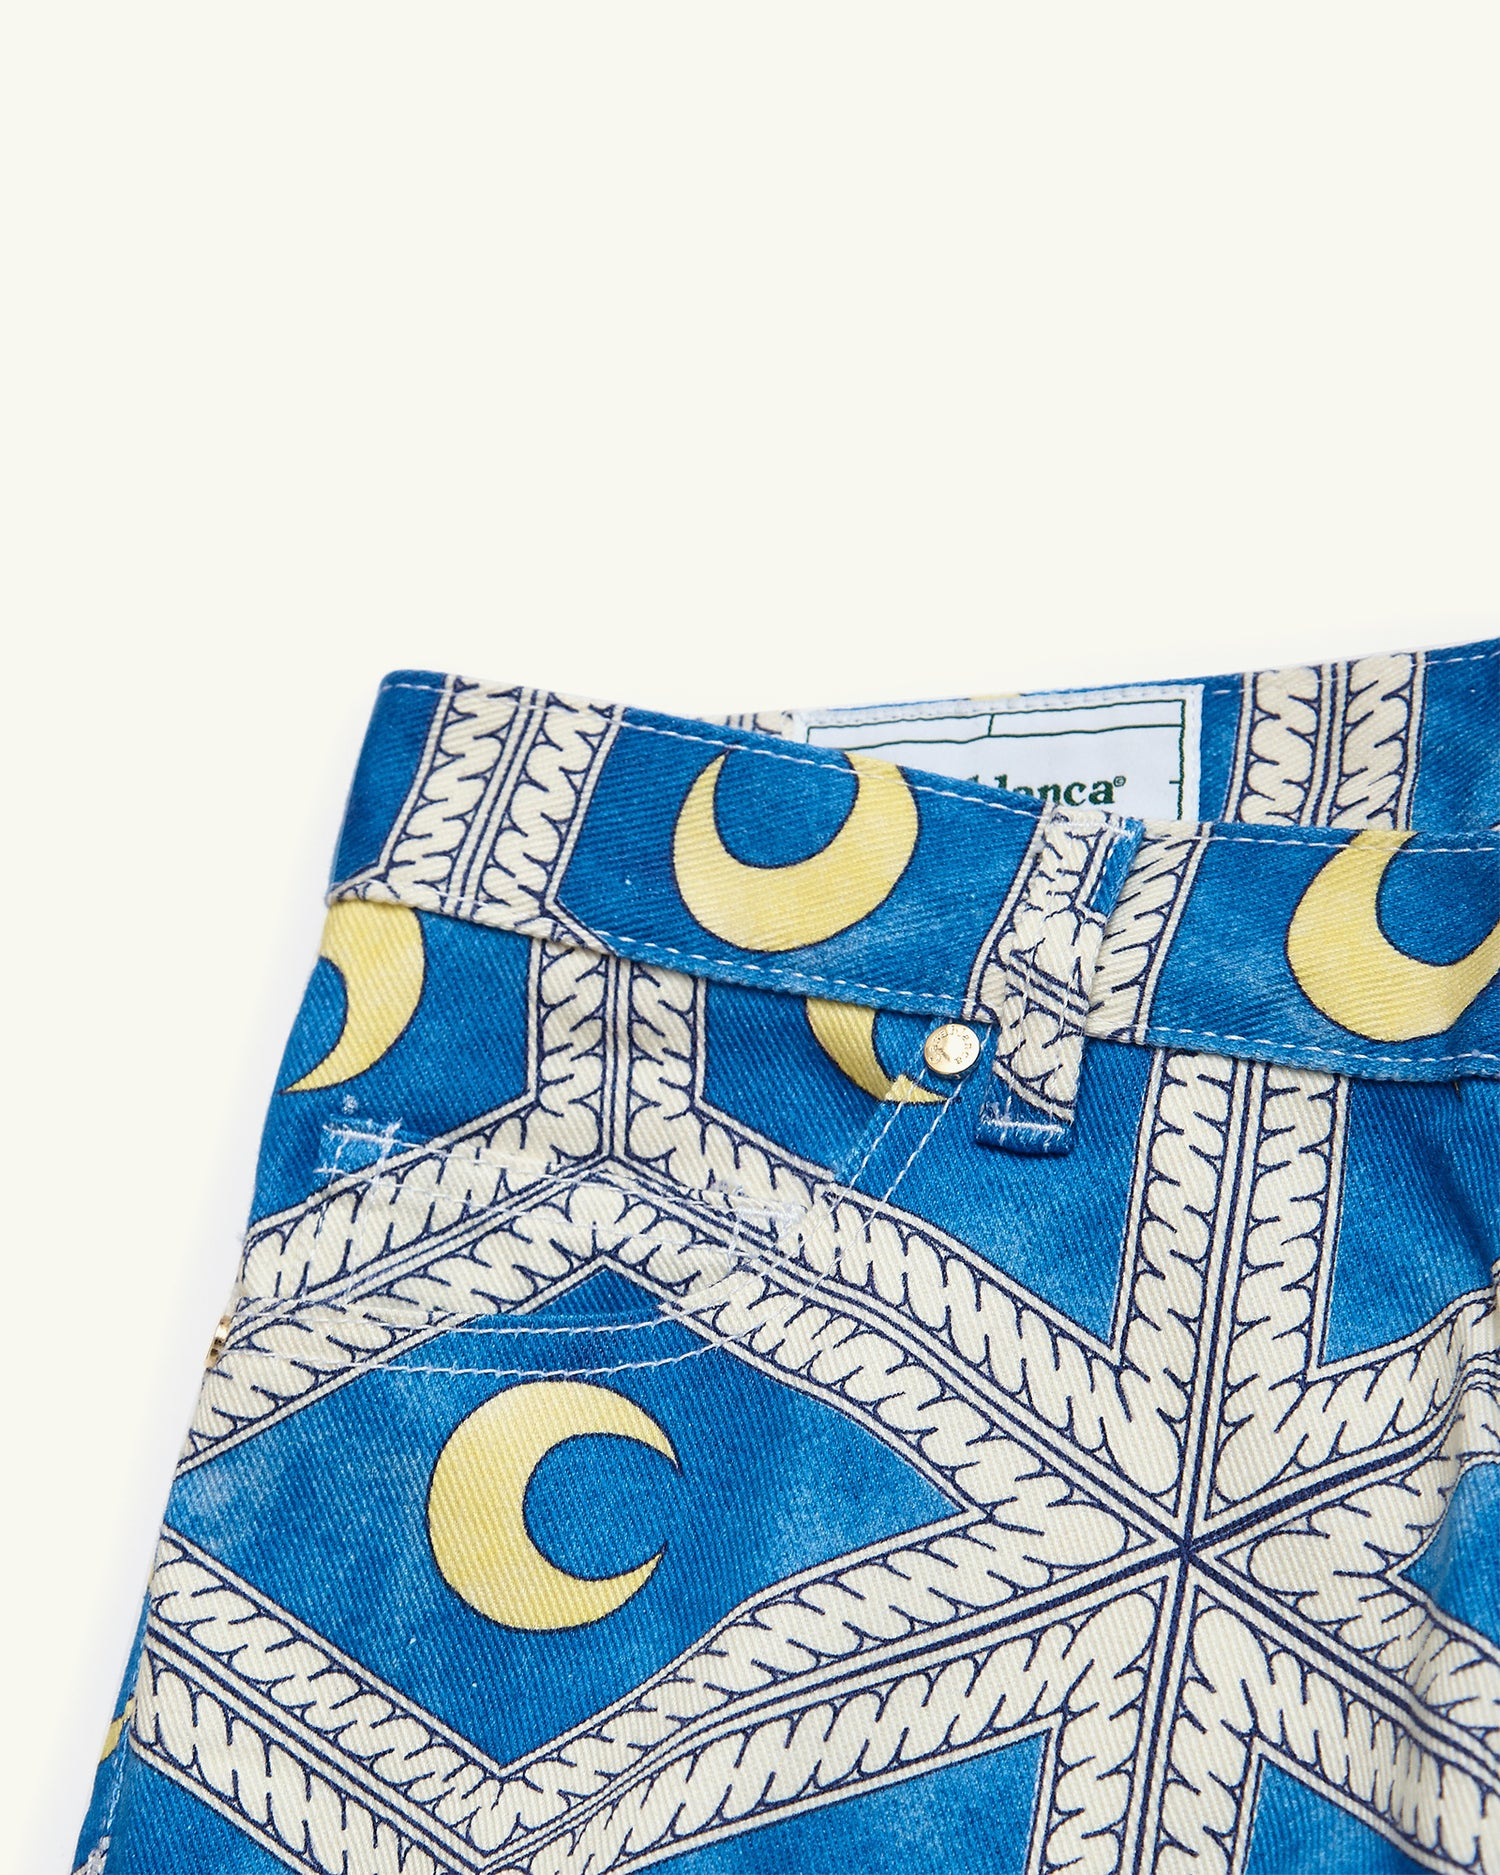 PRINTED DENIM JEANS MOONLIGHT TILES BLUE